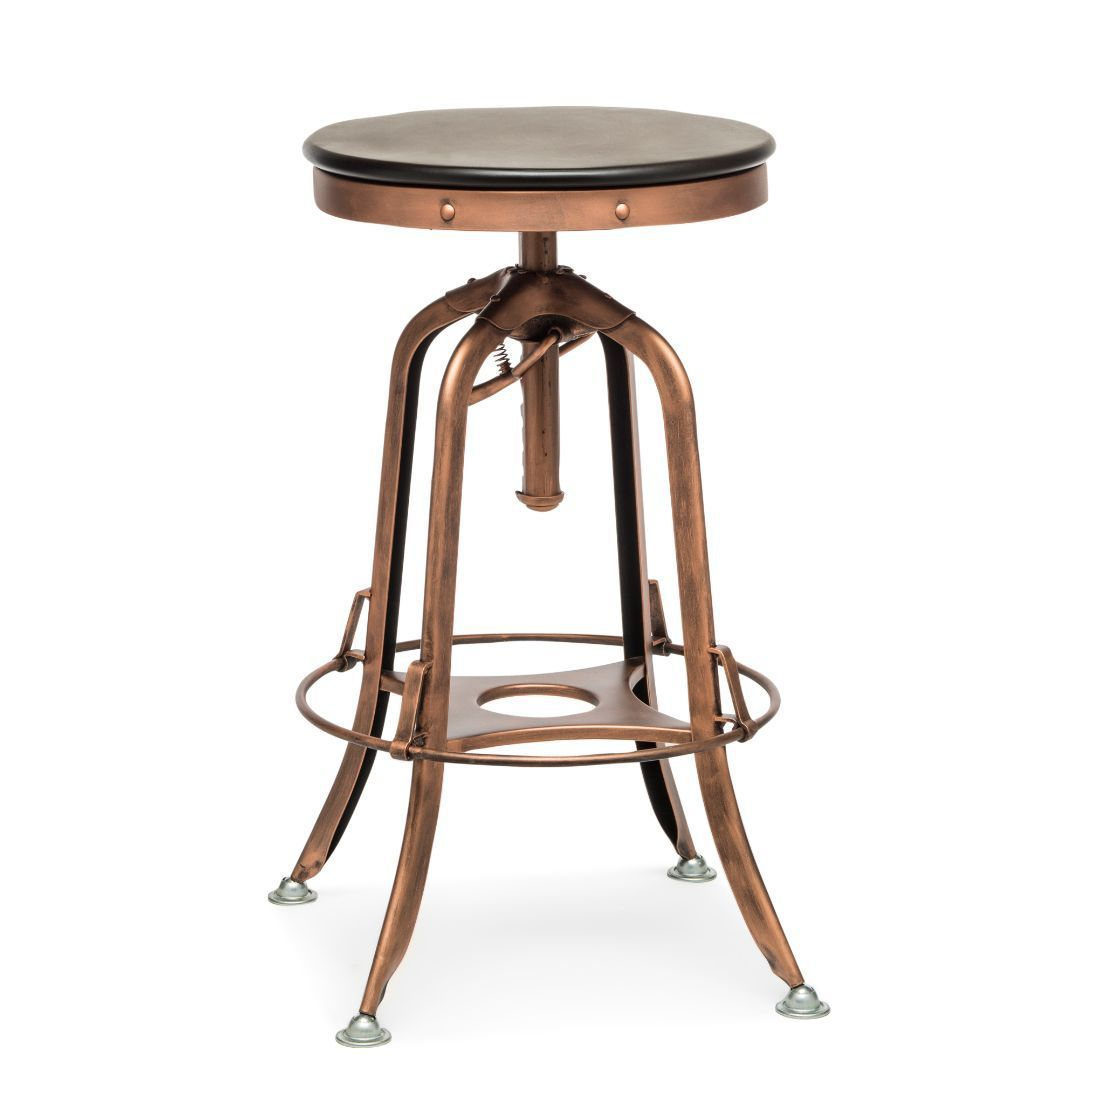 Industrial Adjustable Swivel Bar Stool With Wood Top Antique Copper In 2020 Swivel Bar Stools Bar Stools Stool